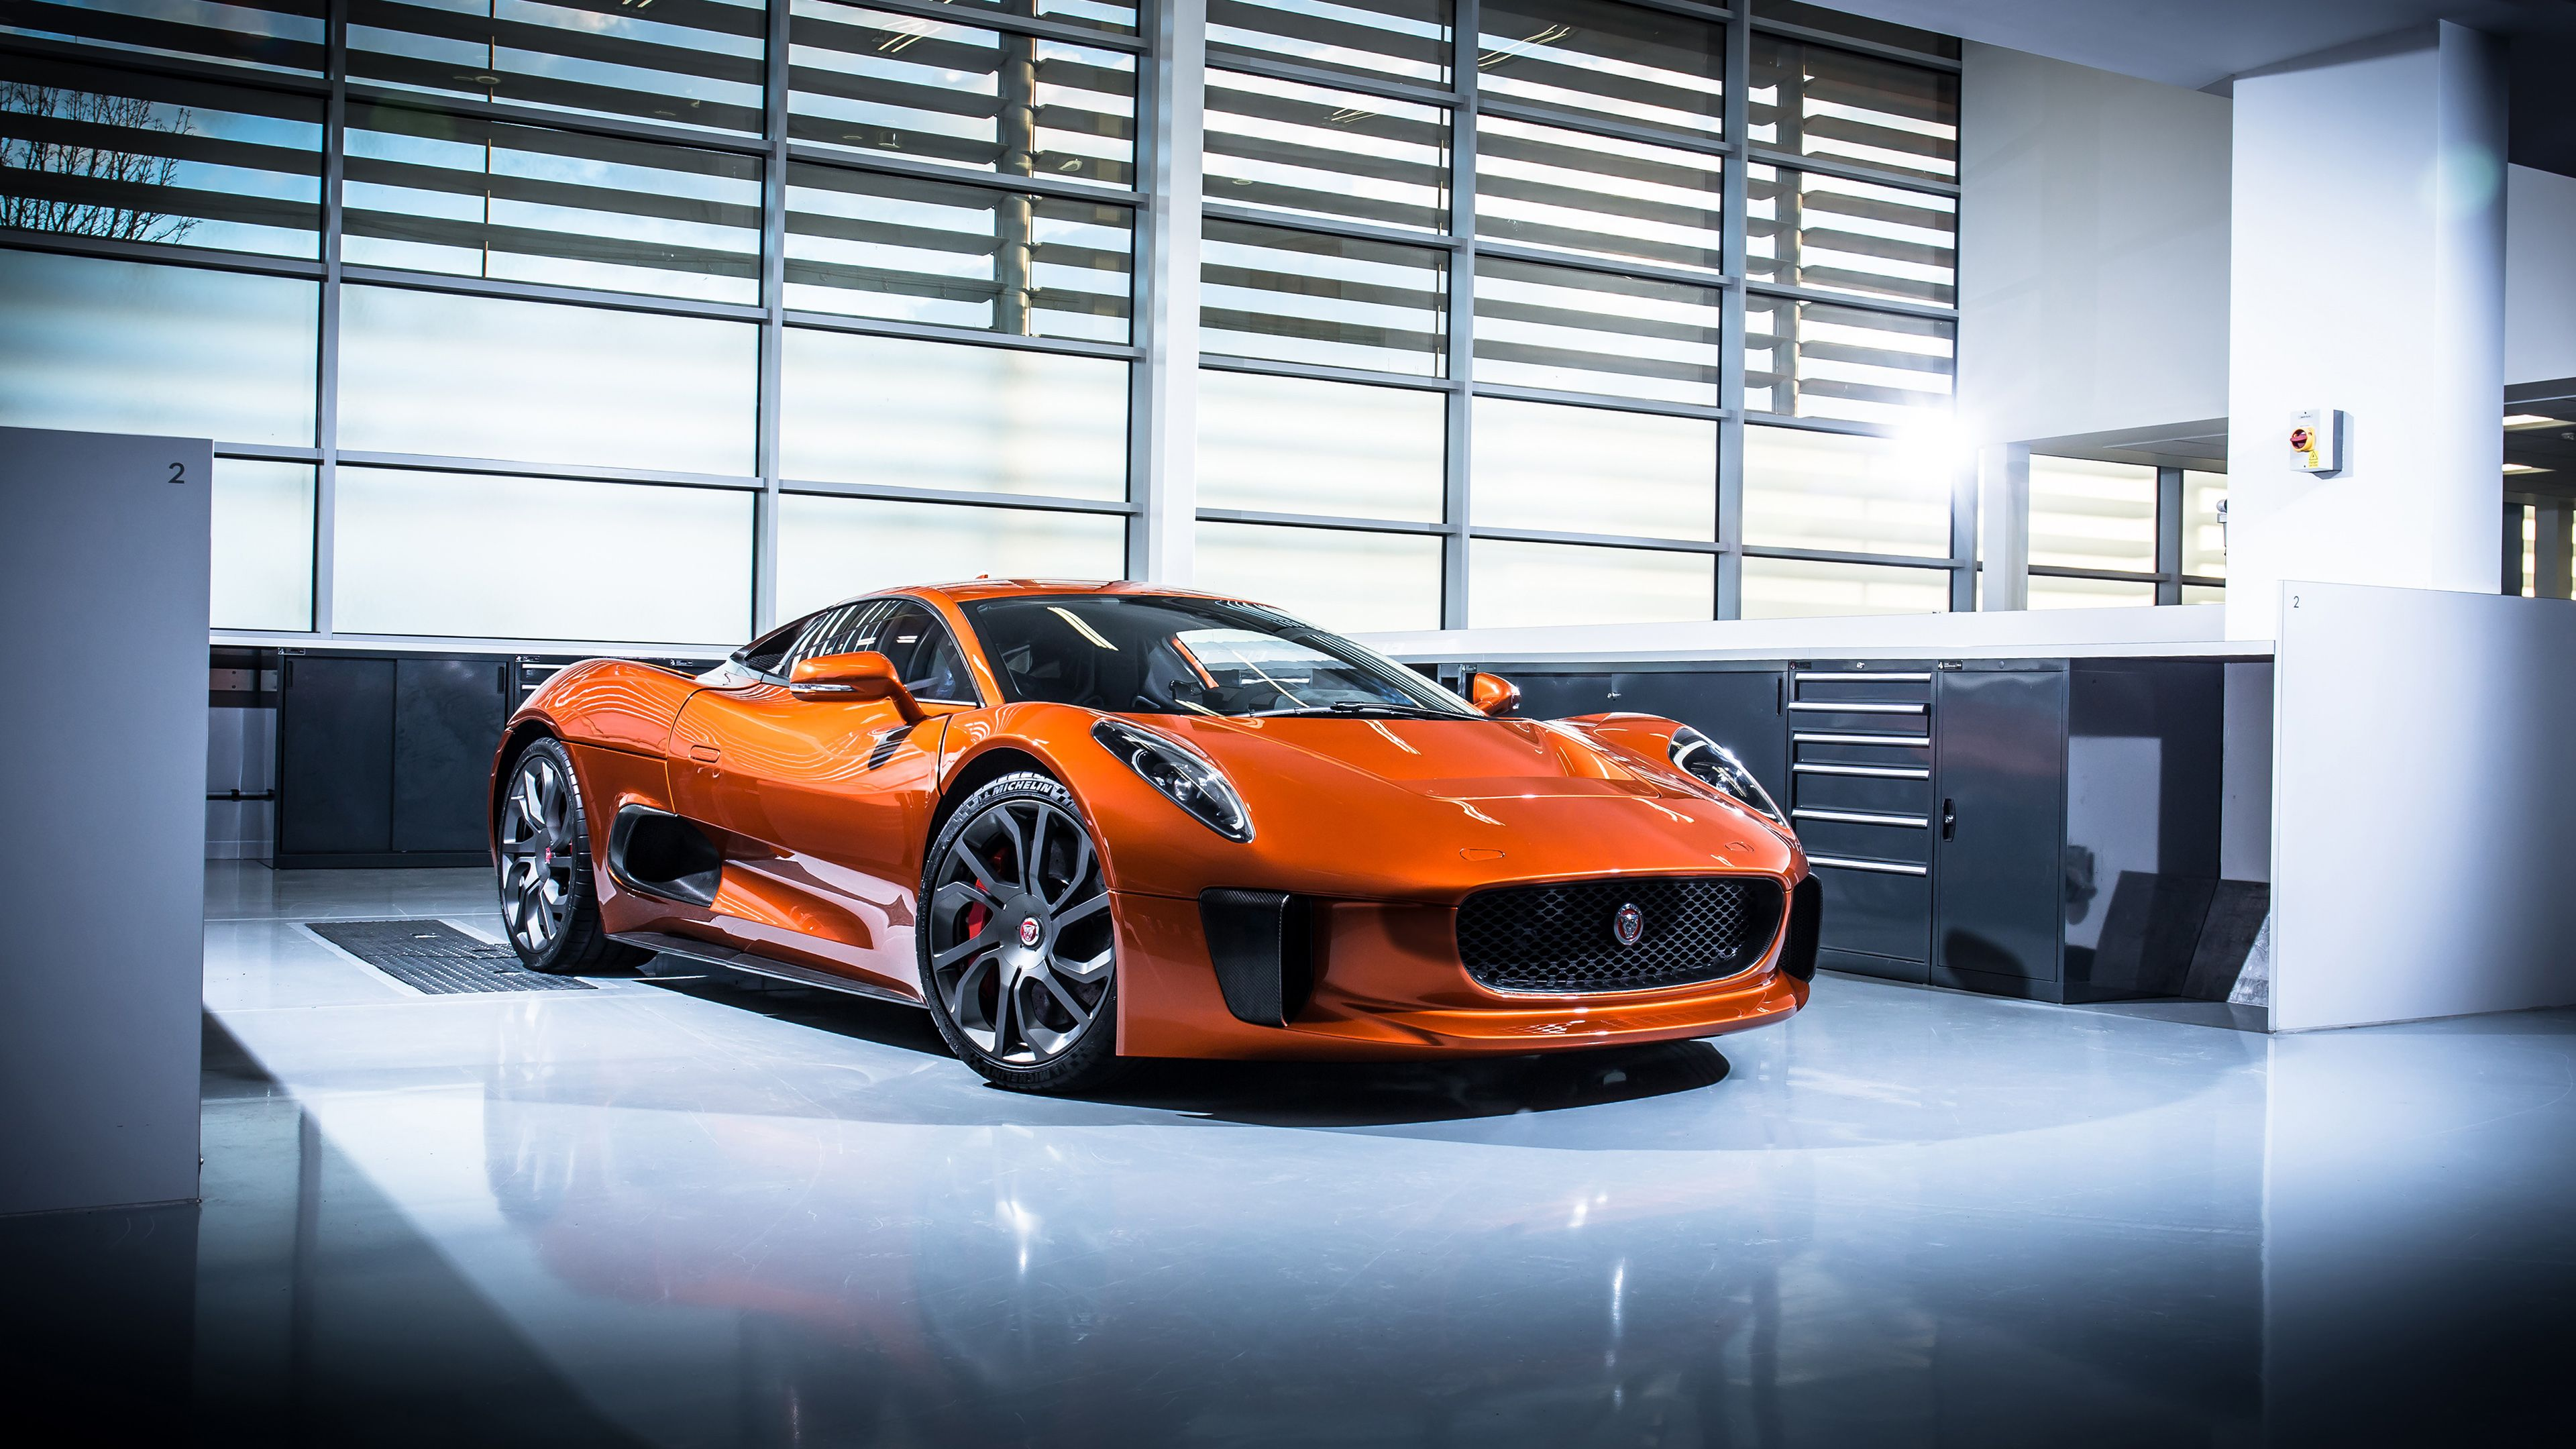 Jaguar CX 75 Prototype, As Featured In Spectre, The Most Recent Bond Movie